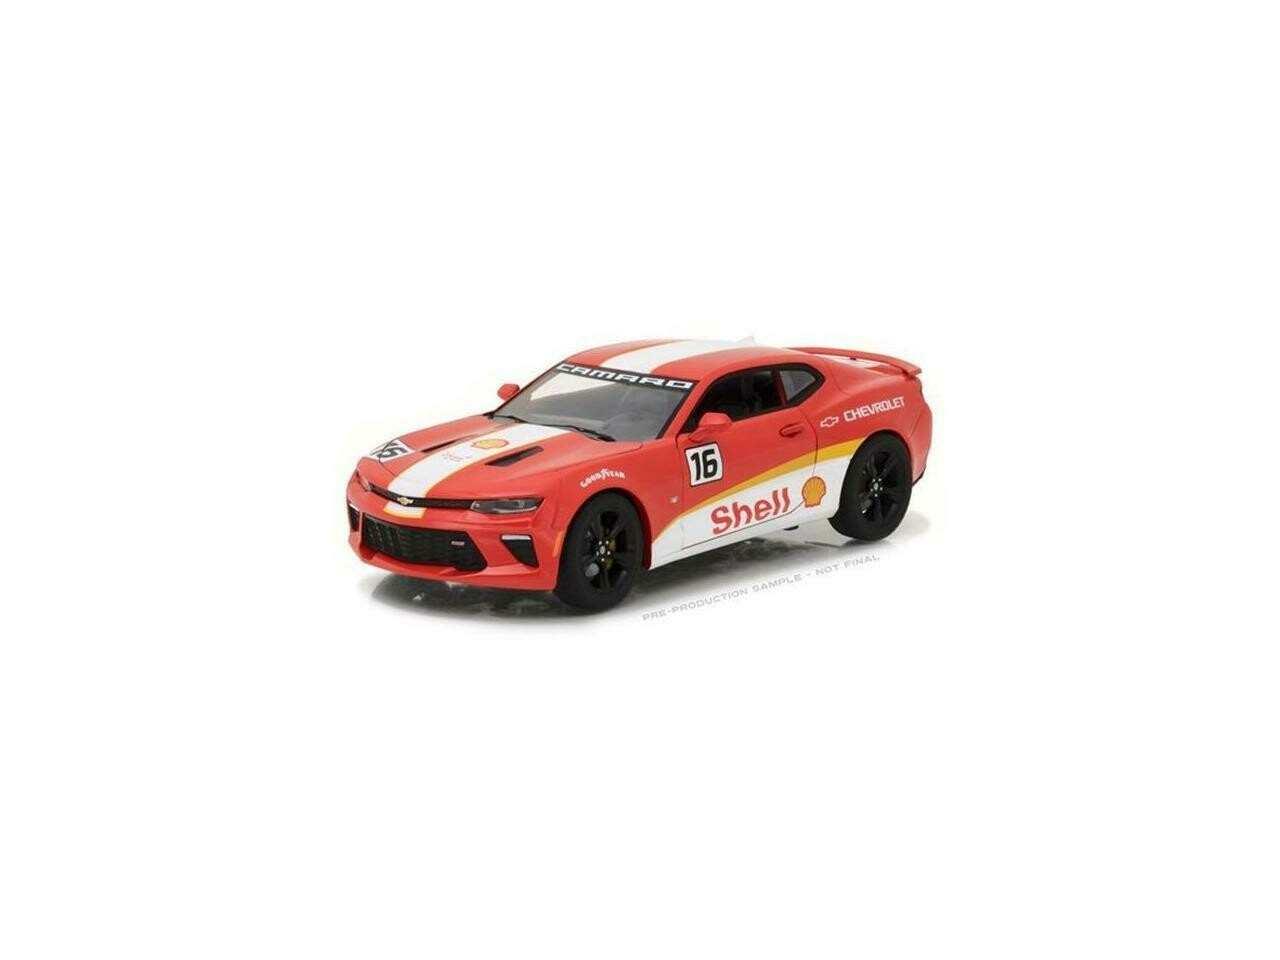 Greenlight; 1/24 2017 Chevy Camaro Shell Oil